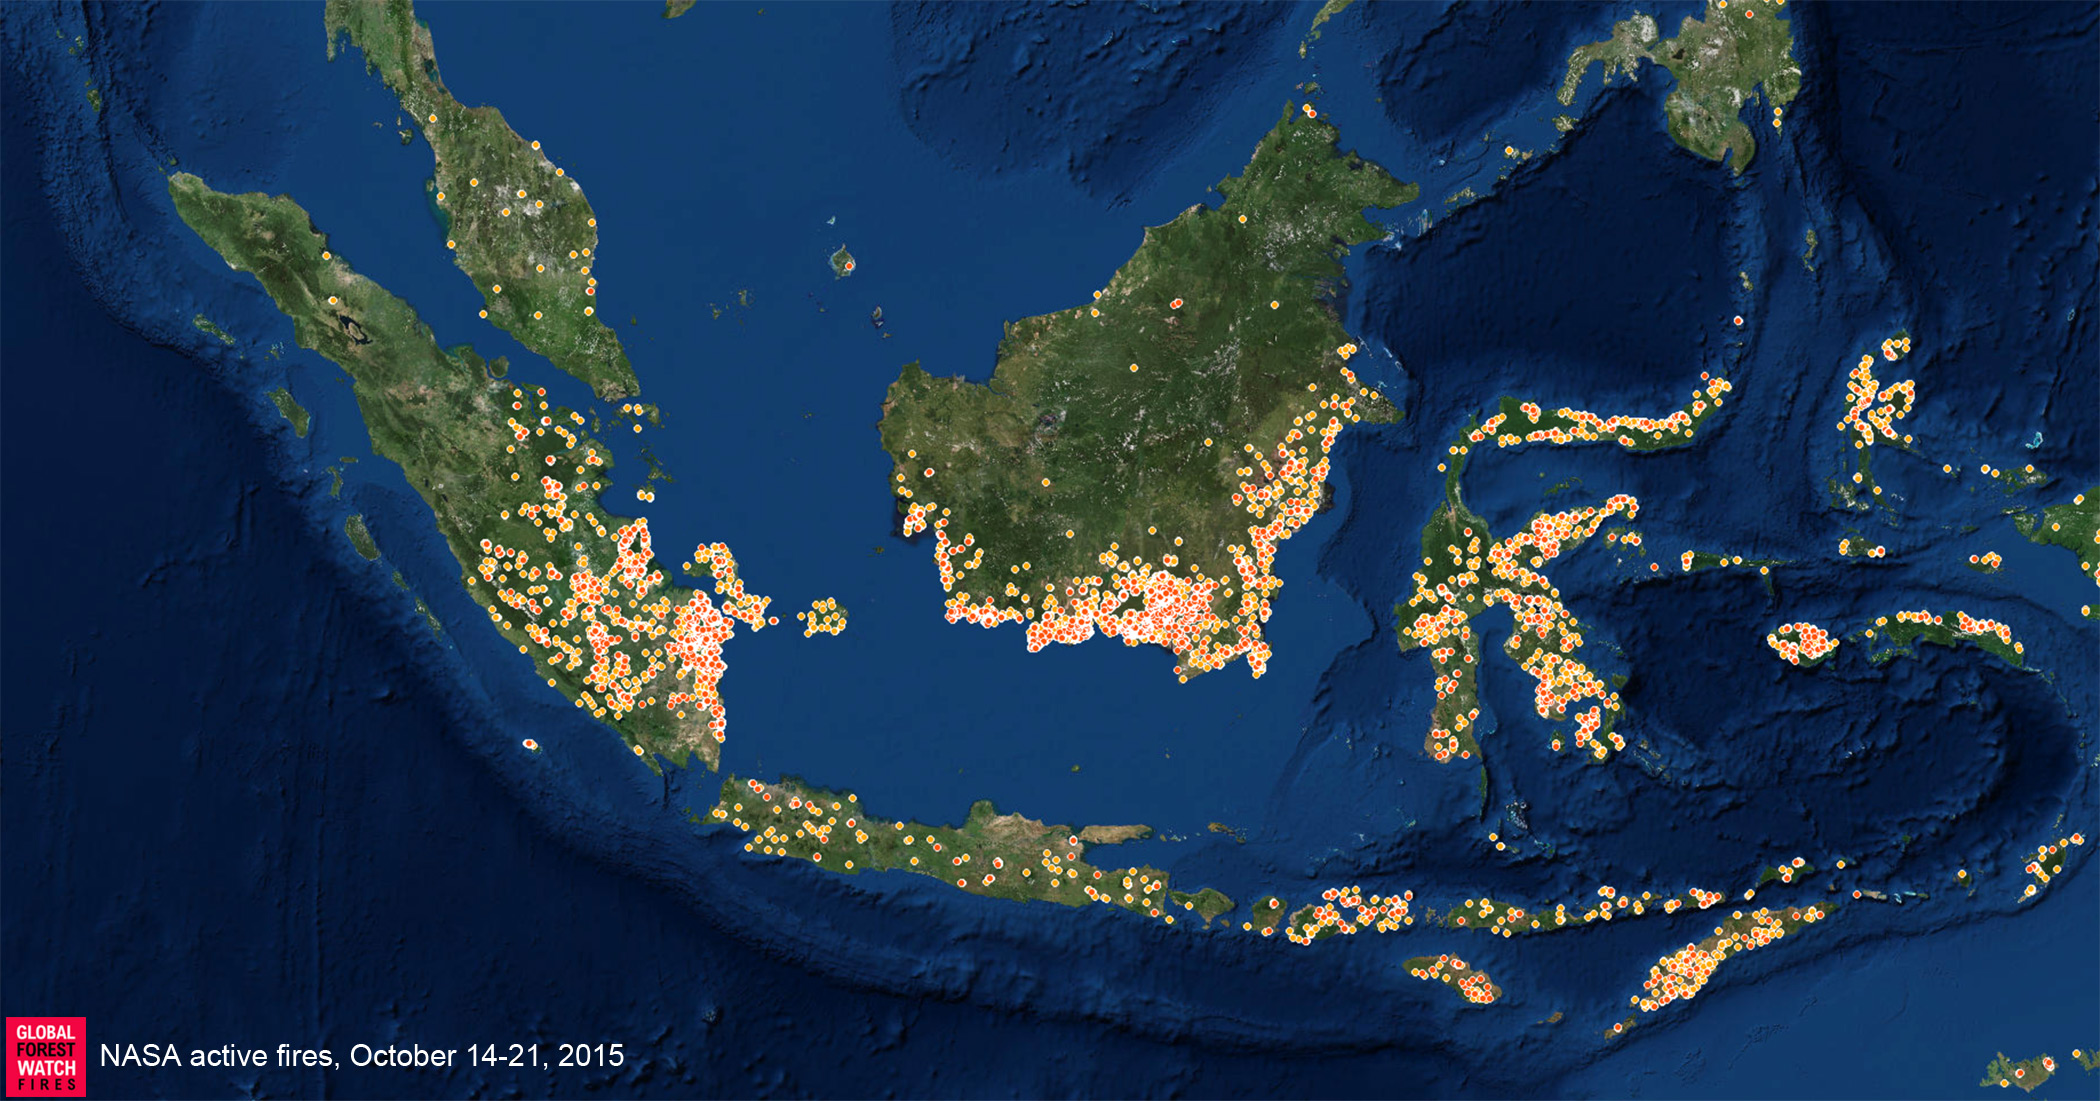 NASA MODIS hotspots for Oct 14-21, 2015 as presented on Global Forest Watch - Fires.